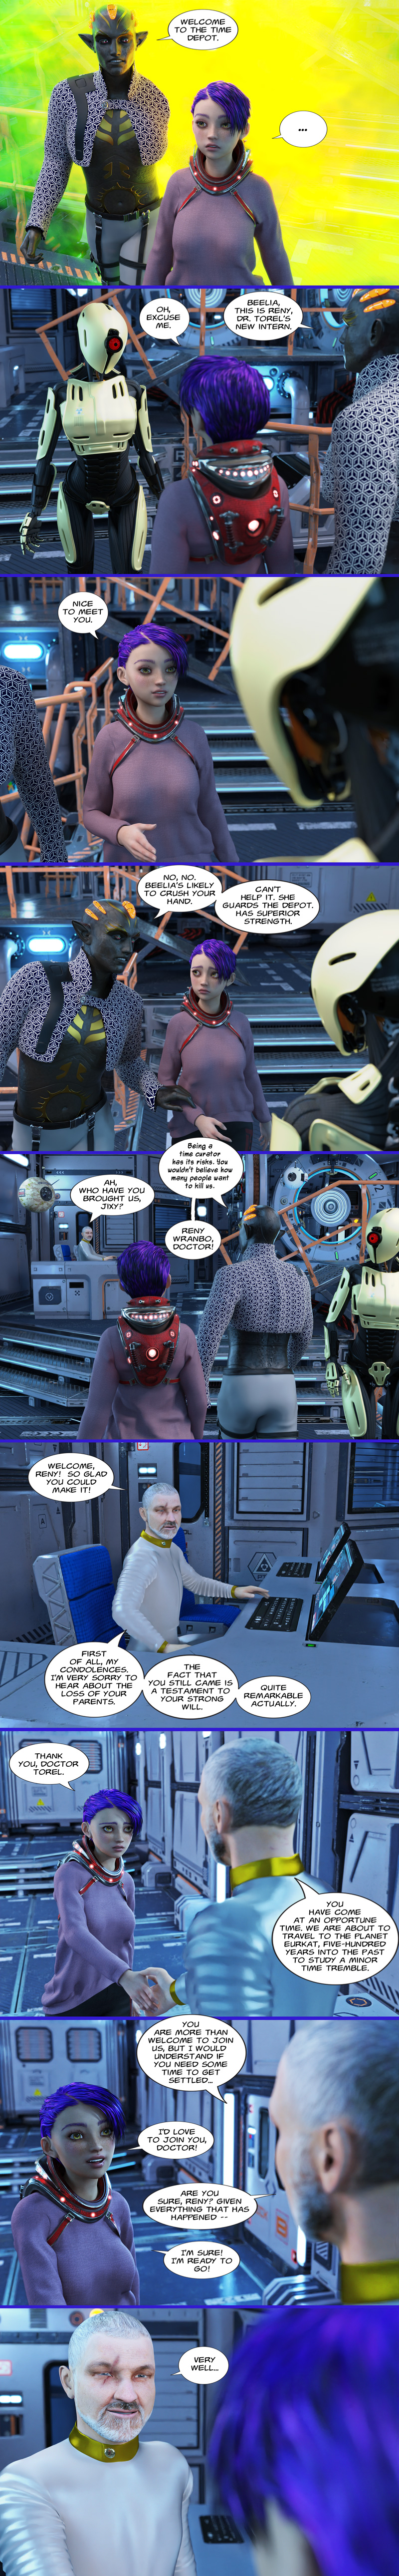 Chapter 19, page 7 – Welcome to the Time Depot